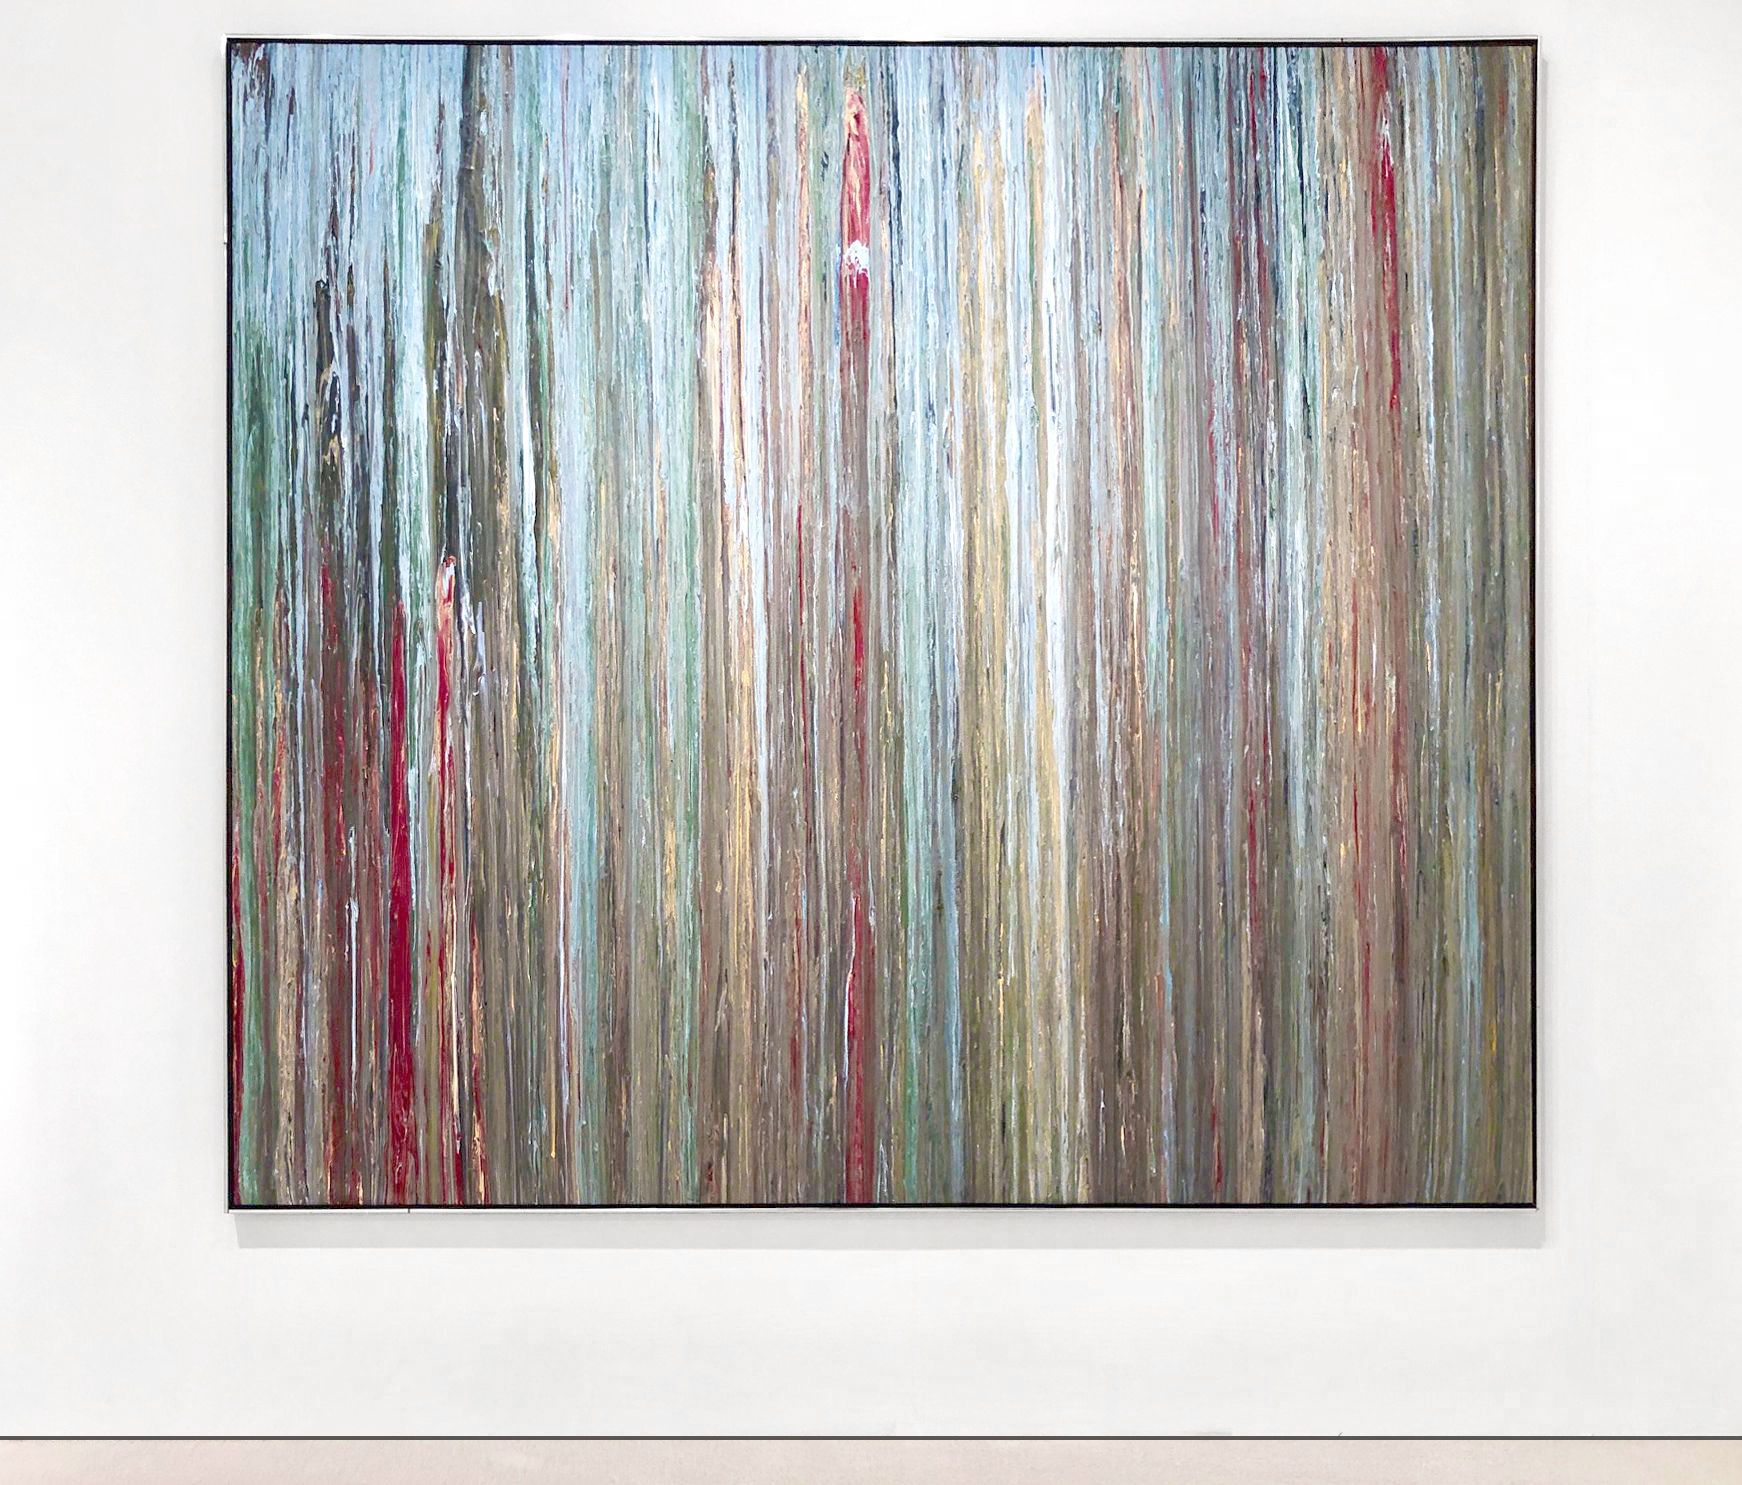 Larry Poons, Untitled, 1973